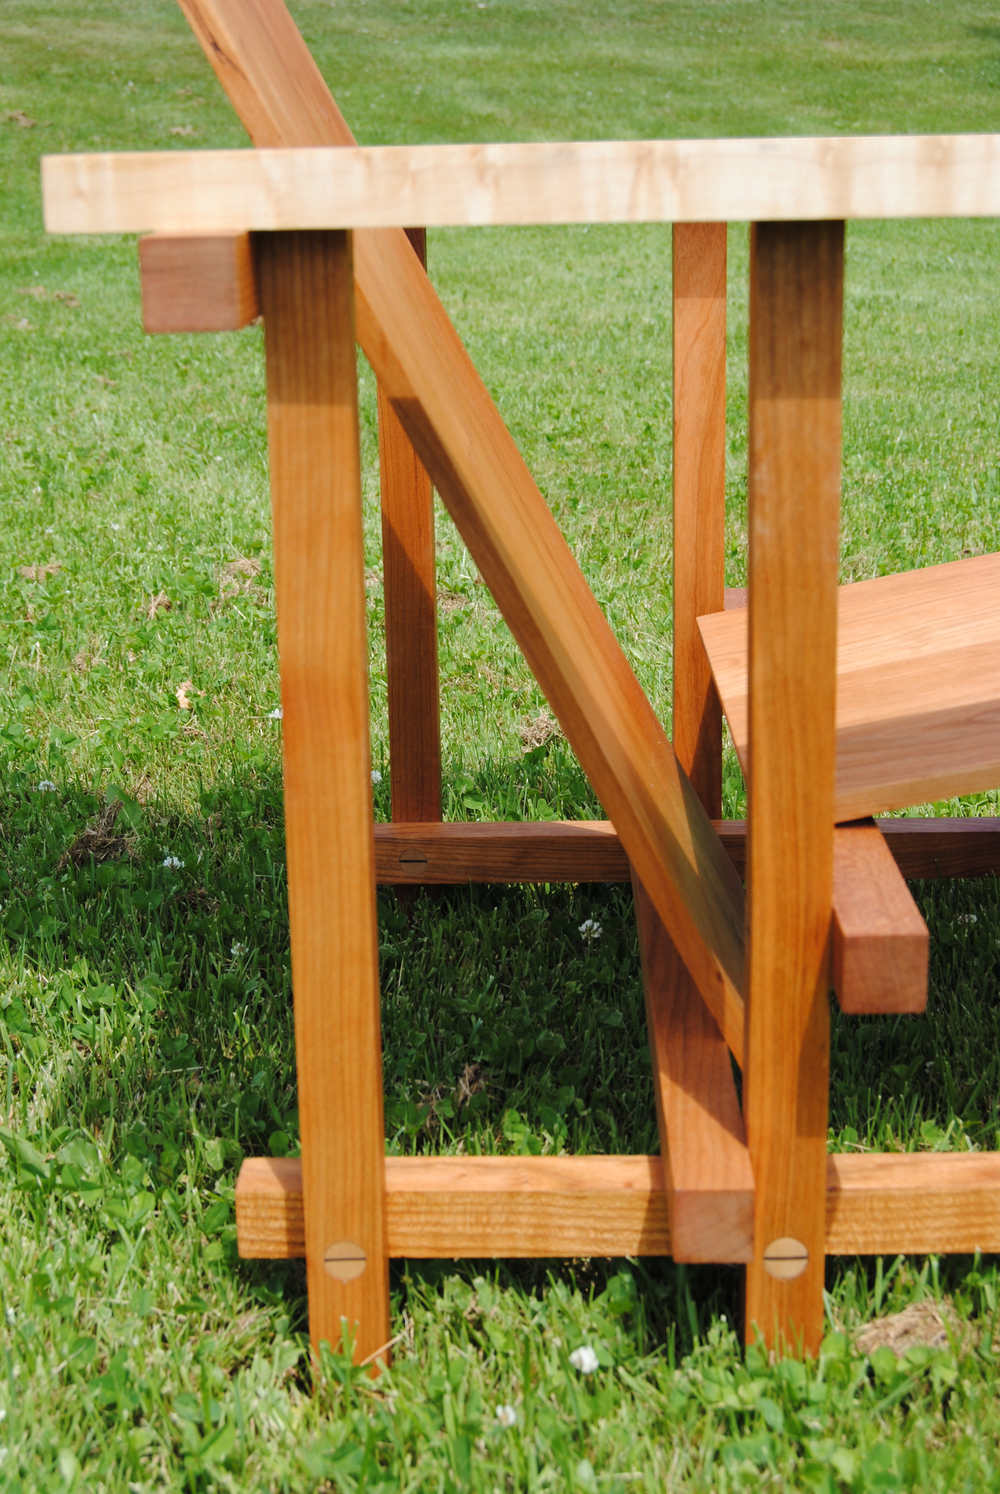 maple walnut chair side shot.jpg